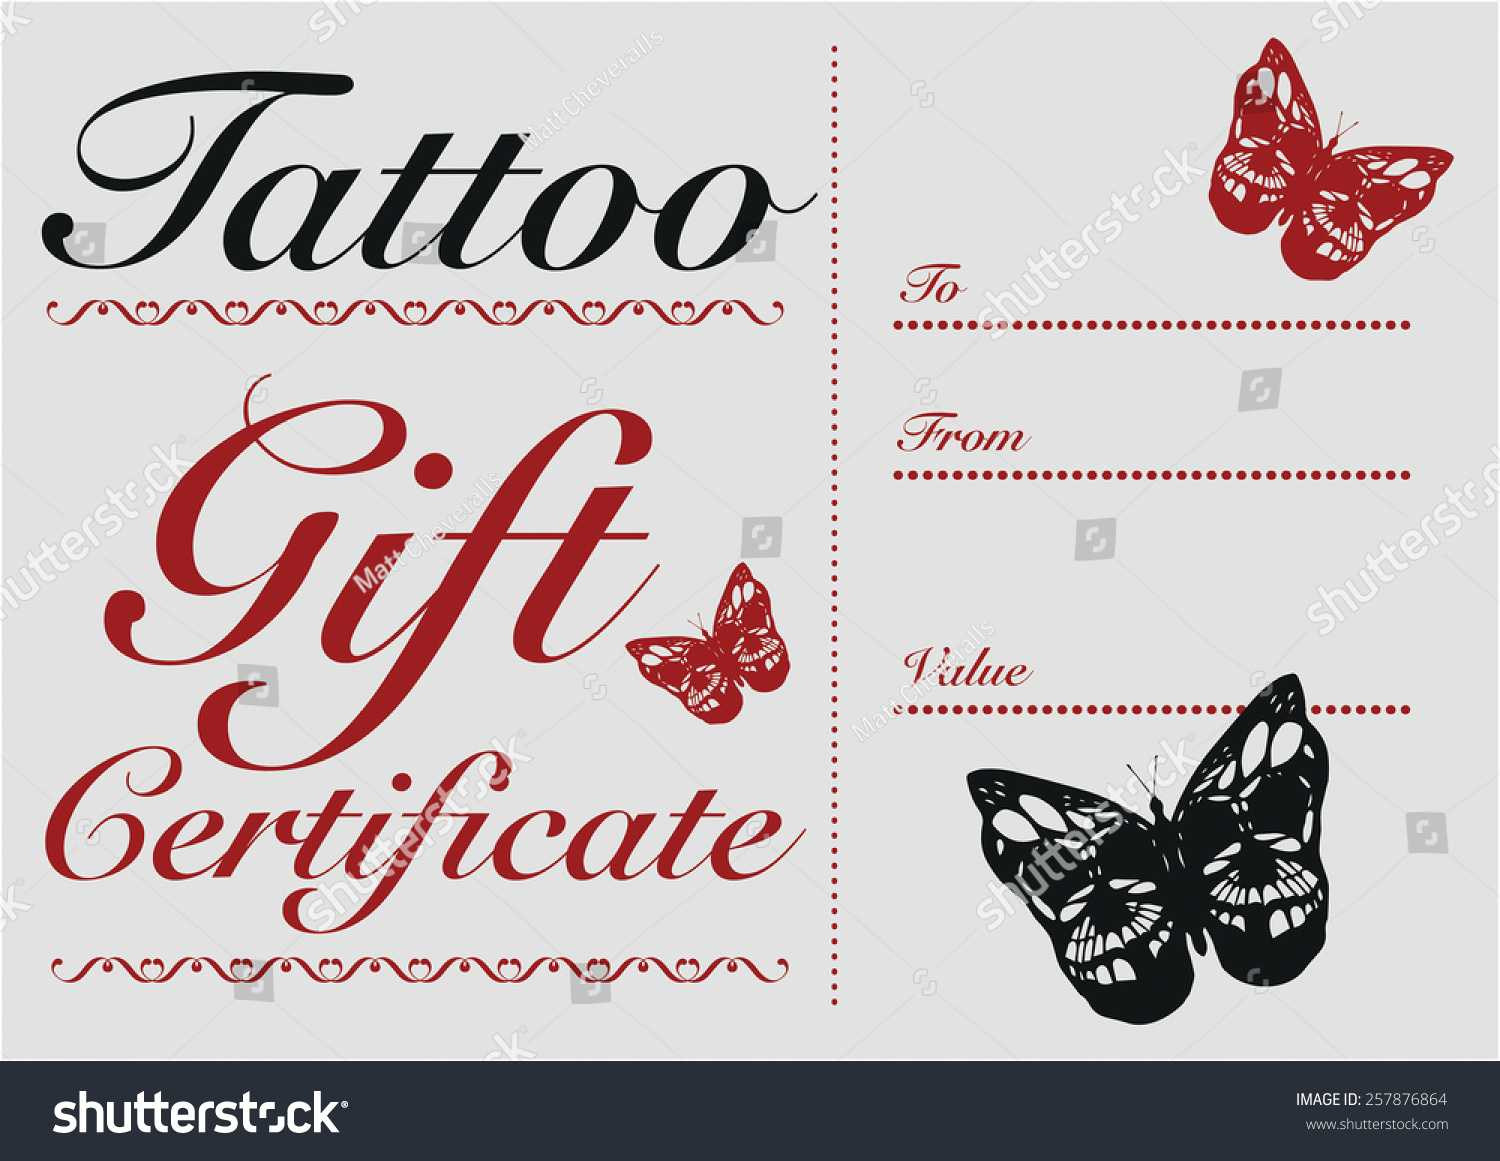 Tattoo Gift Certificate Template Free For Tattoo Gift Certificate Template